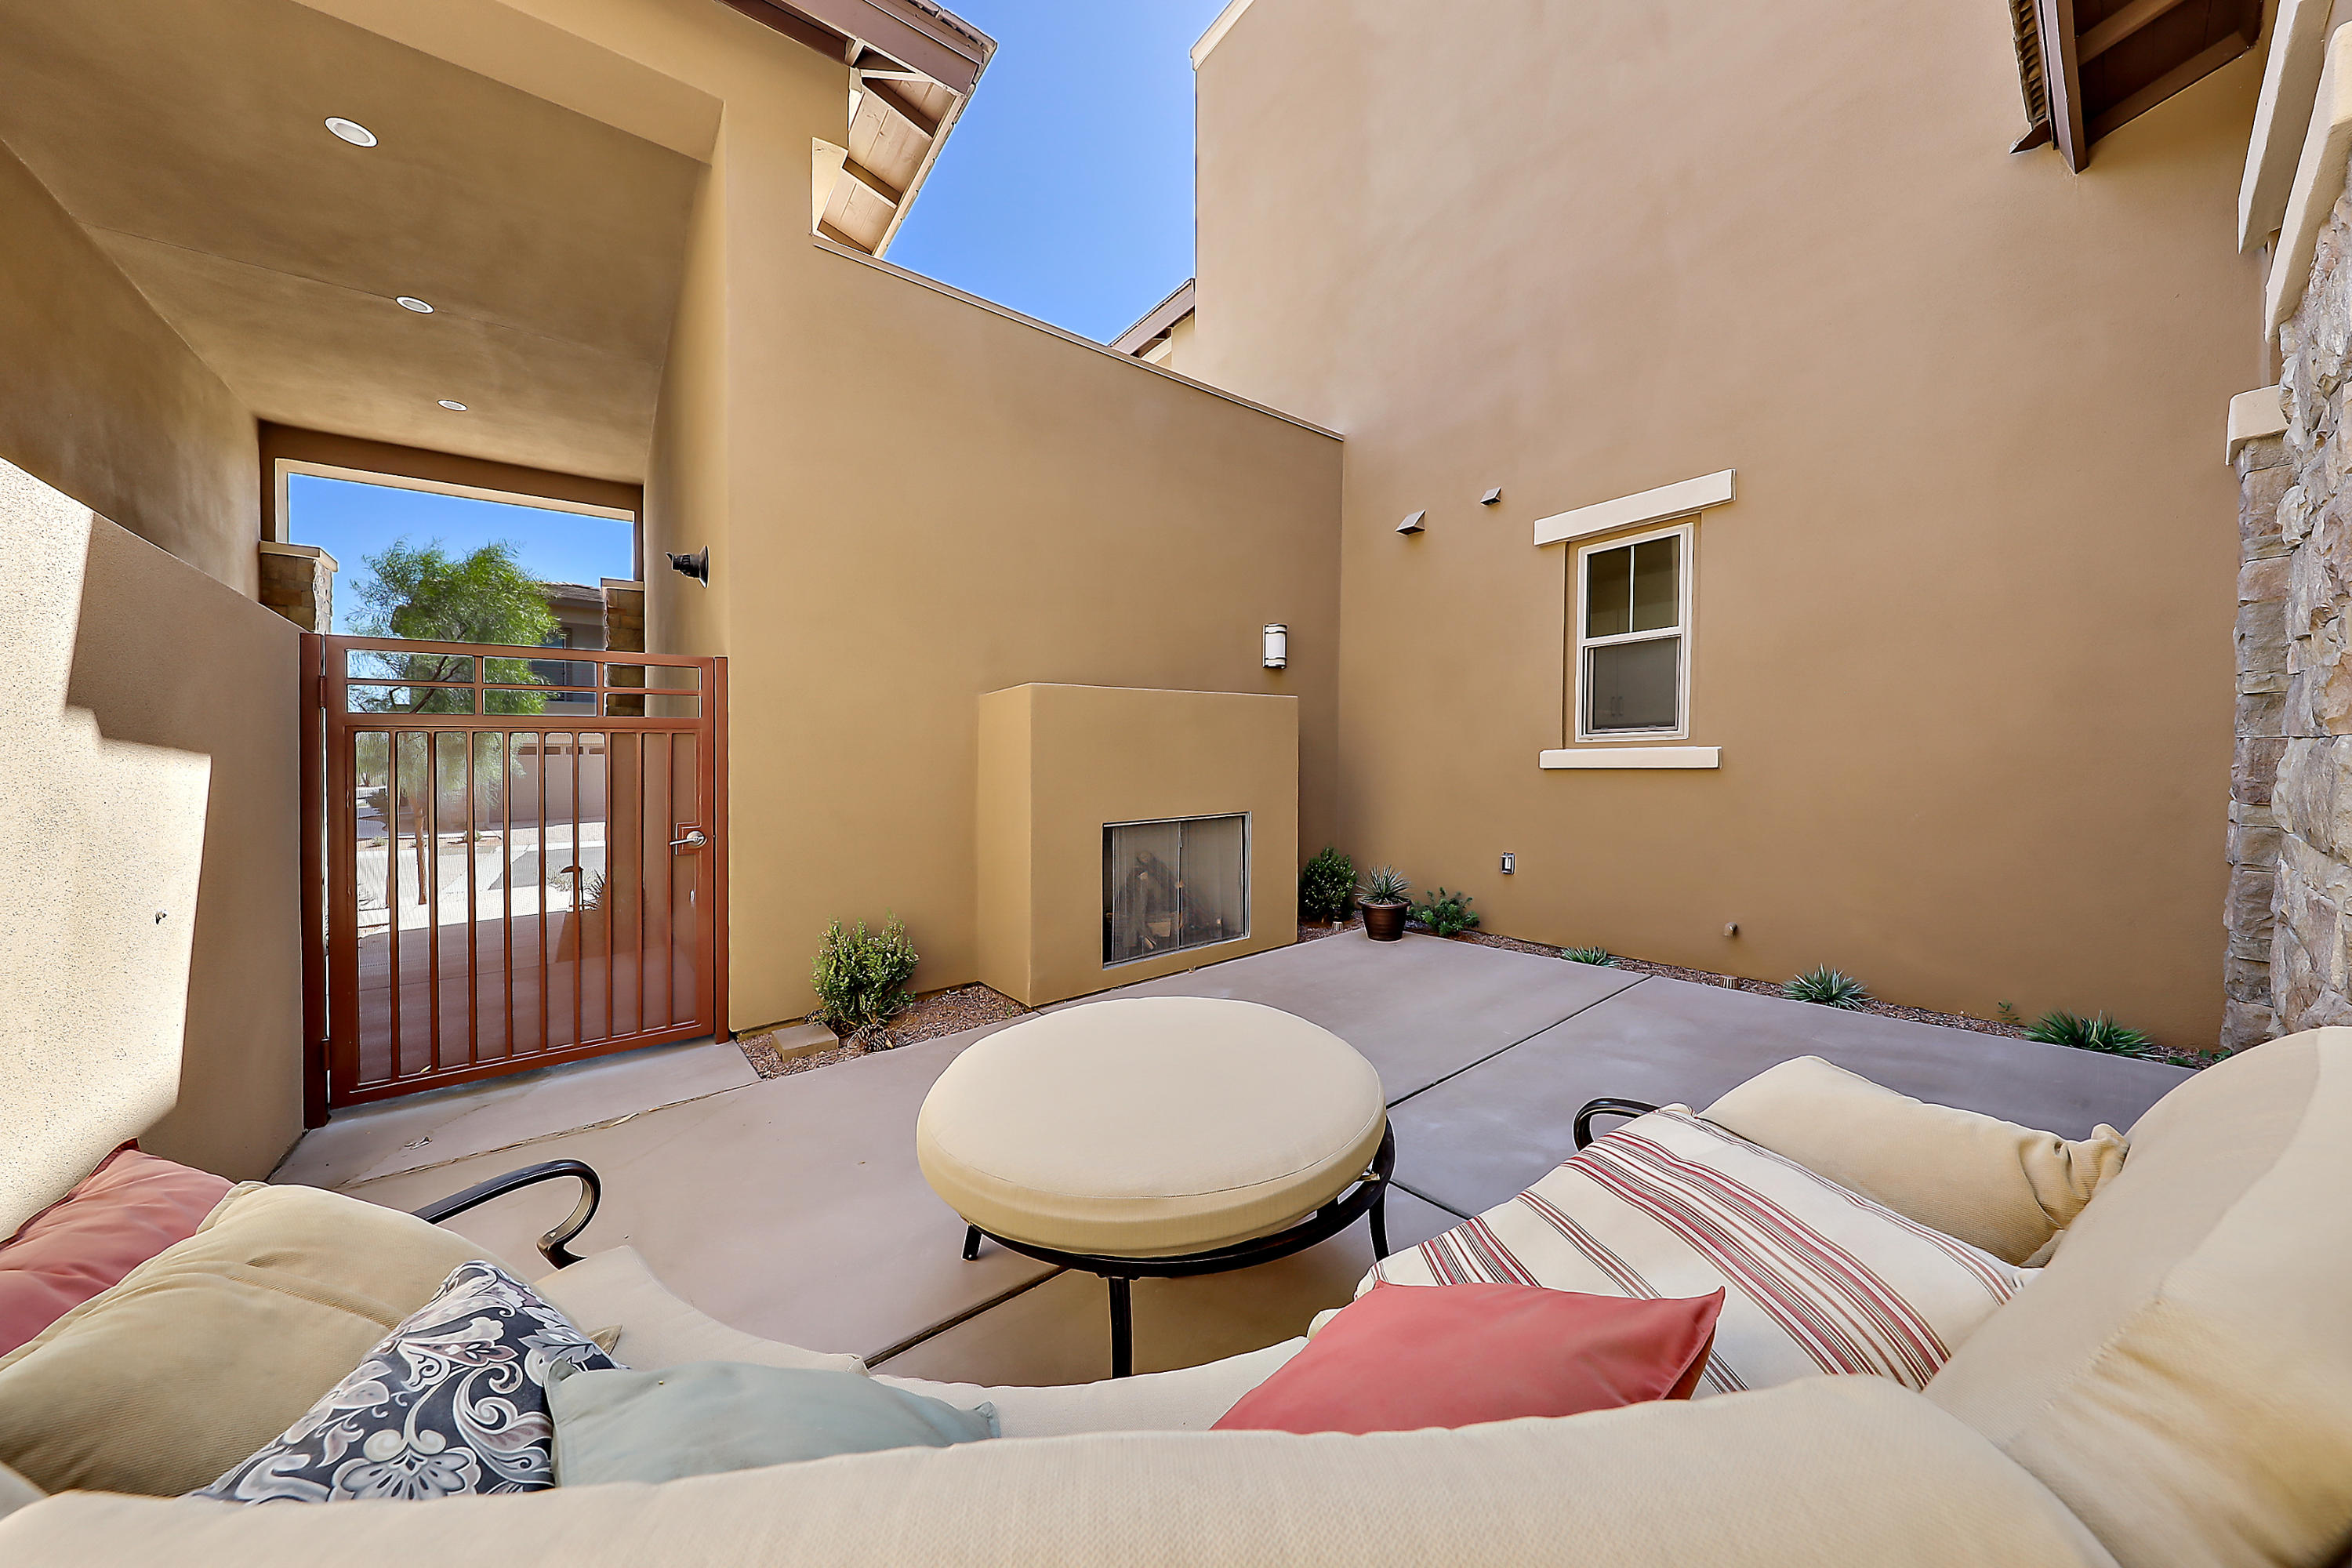 1601 Retreat Circle, Palm Desert, California 92260, 2 Bedrooms Bedrooms, ,3 BathroomsBathrooms,Residential,For Sale,1601 Retreat Circle,219045439